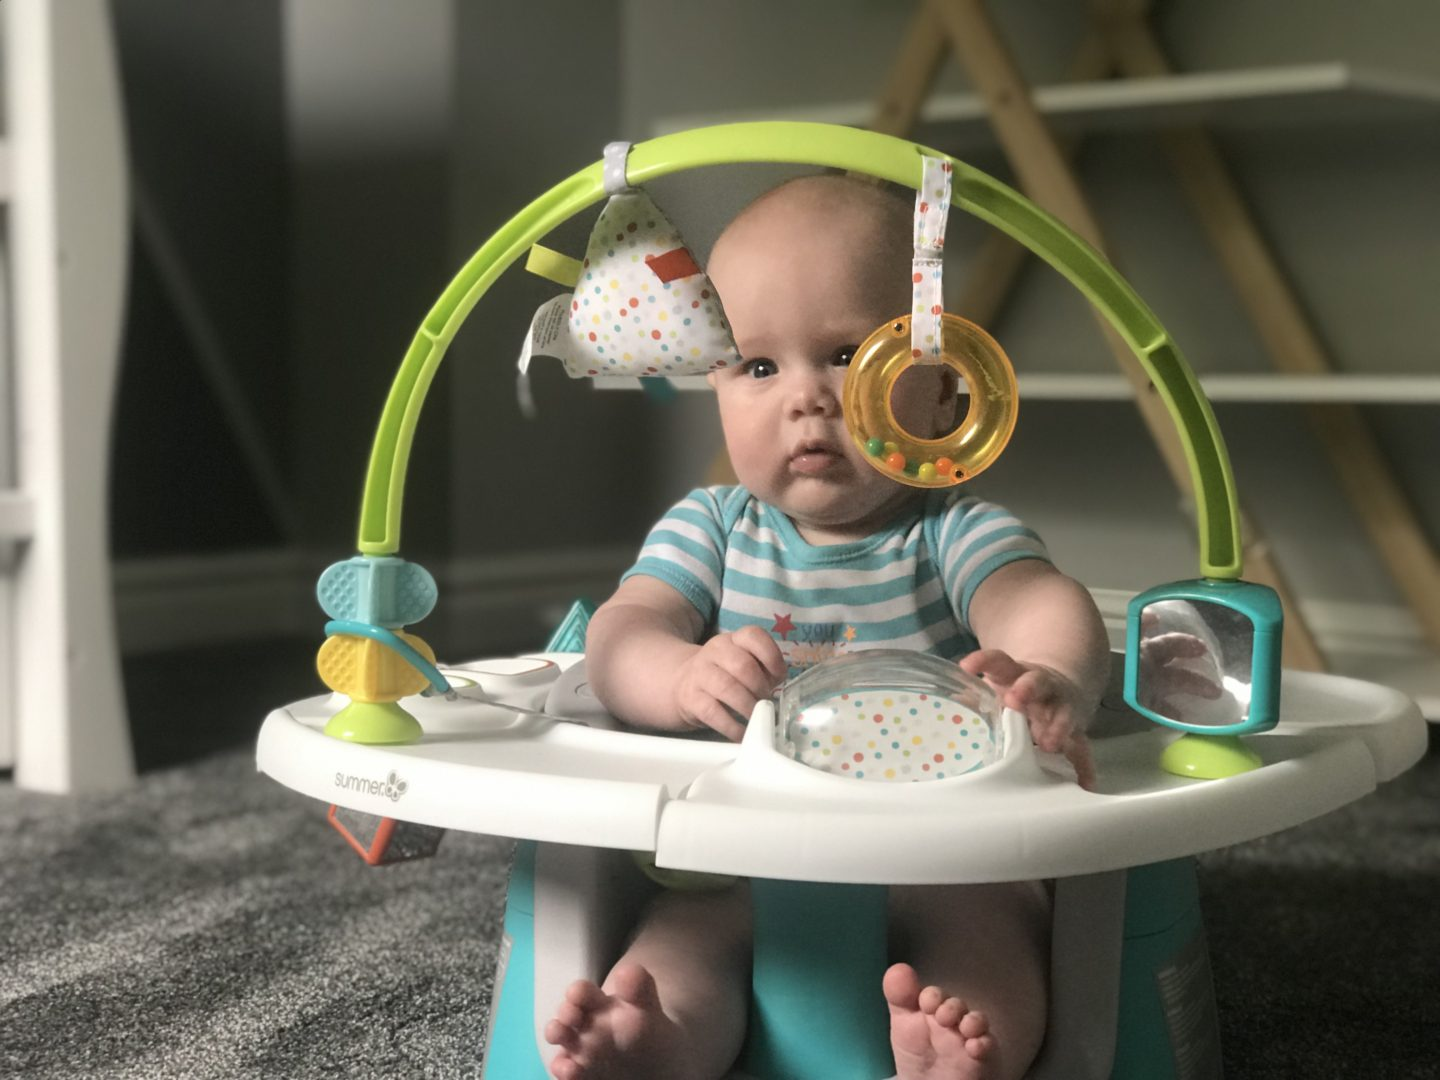 Felix in his Summer Delux 4 in 1 Superseat looking at dangling toys